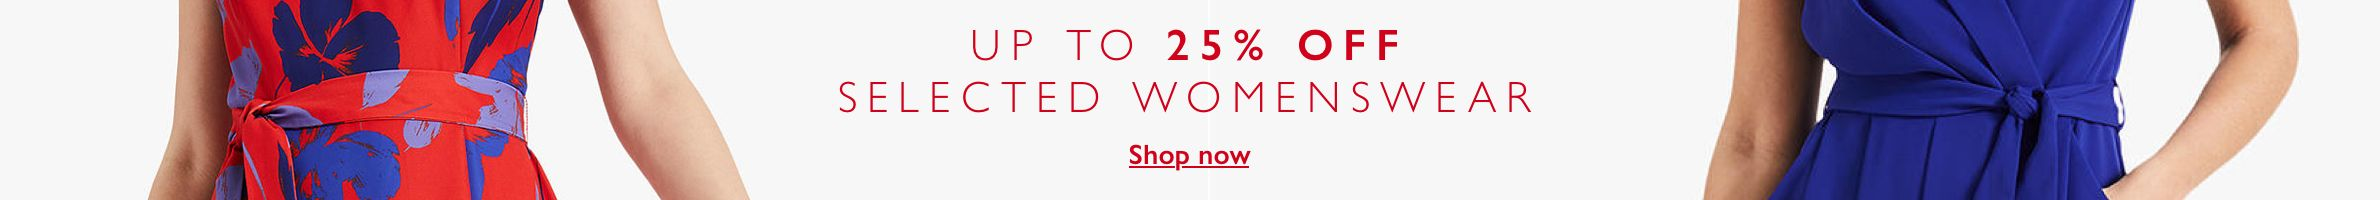 up to 25% off selected Womenswear